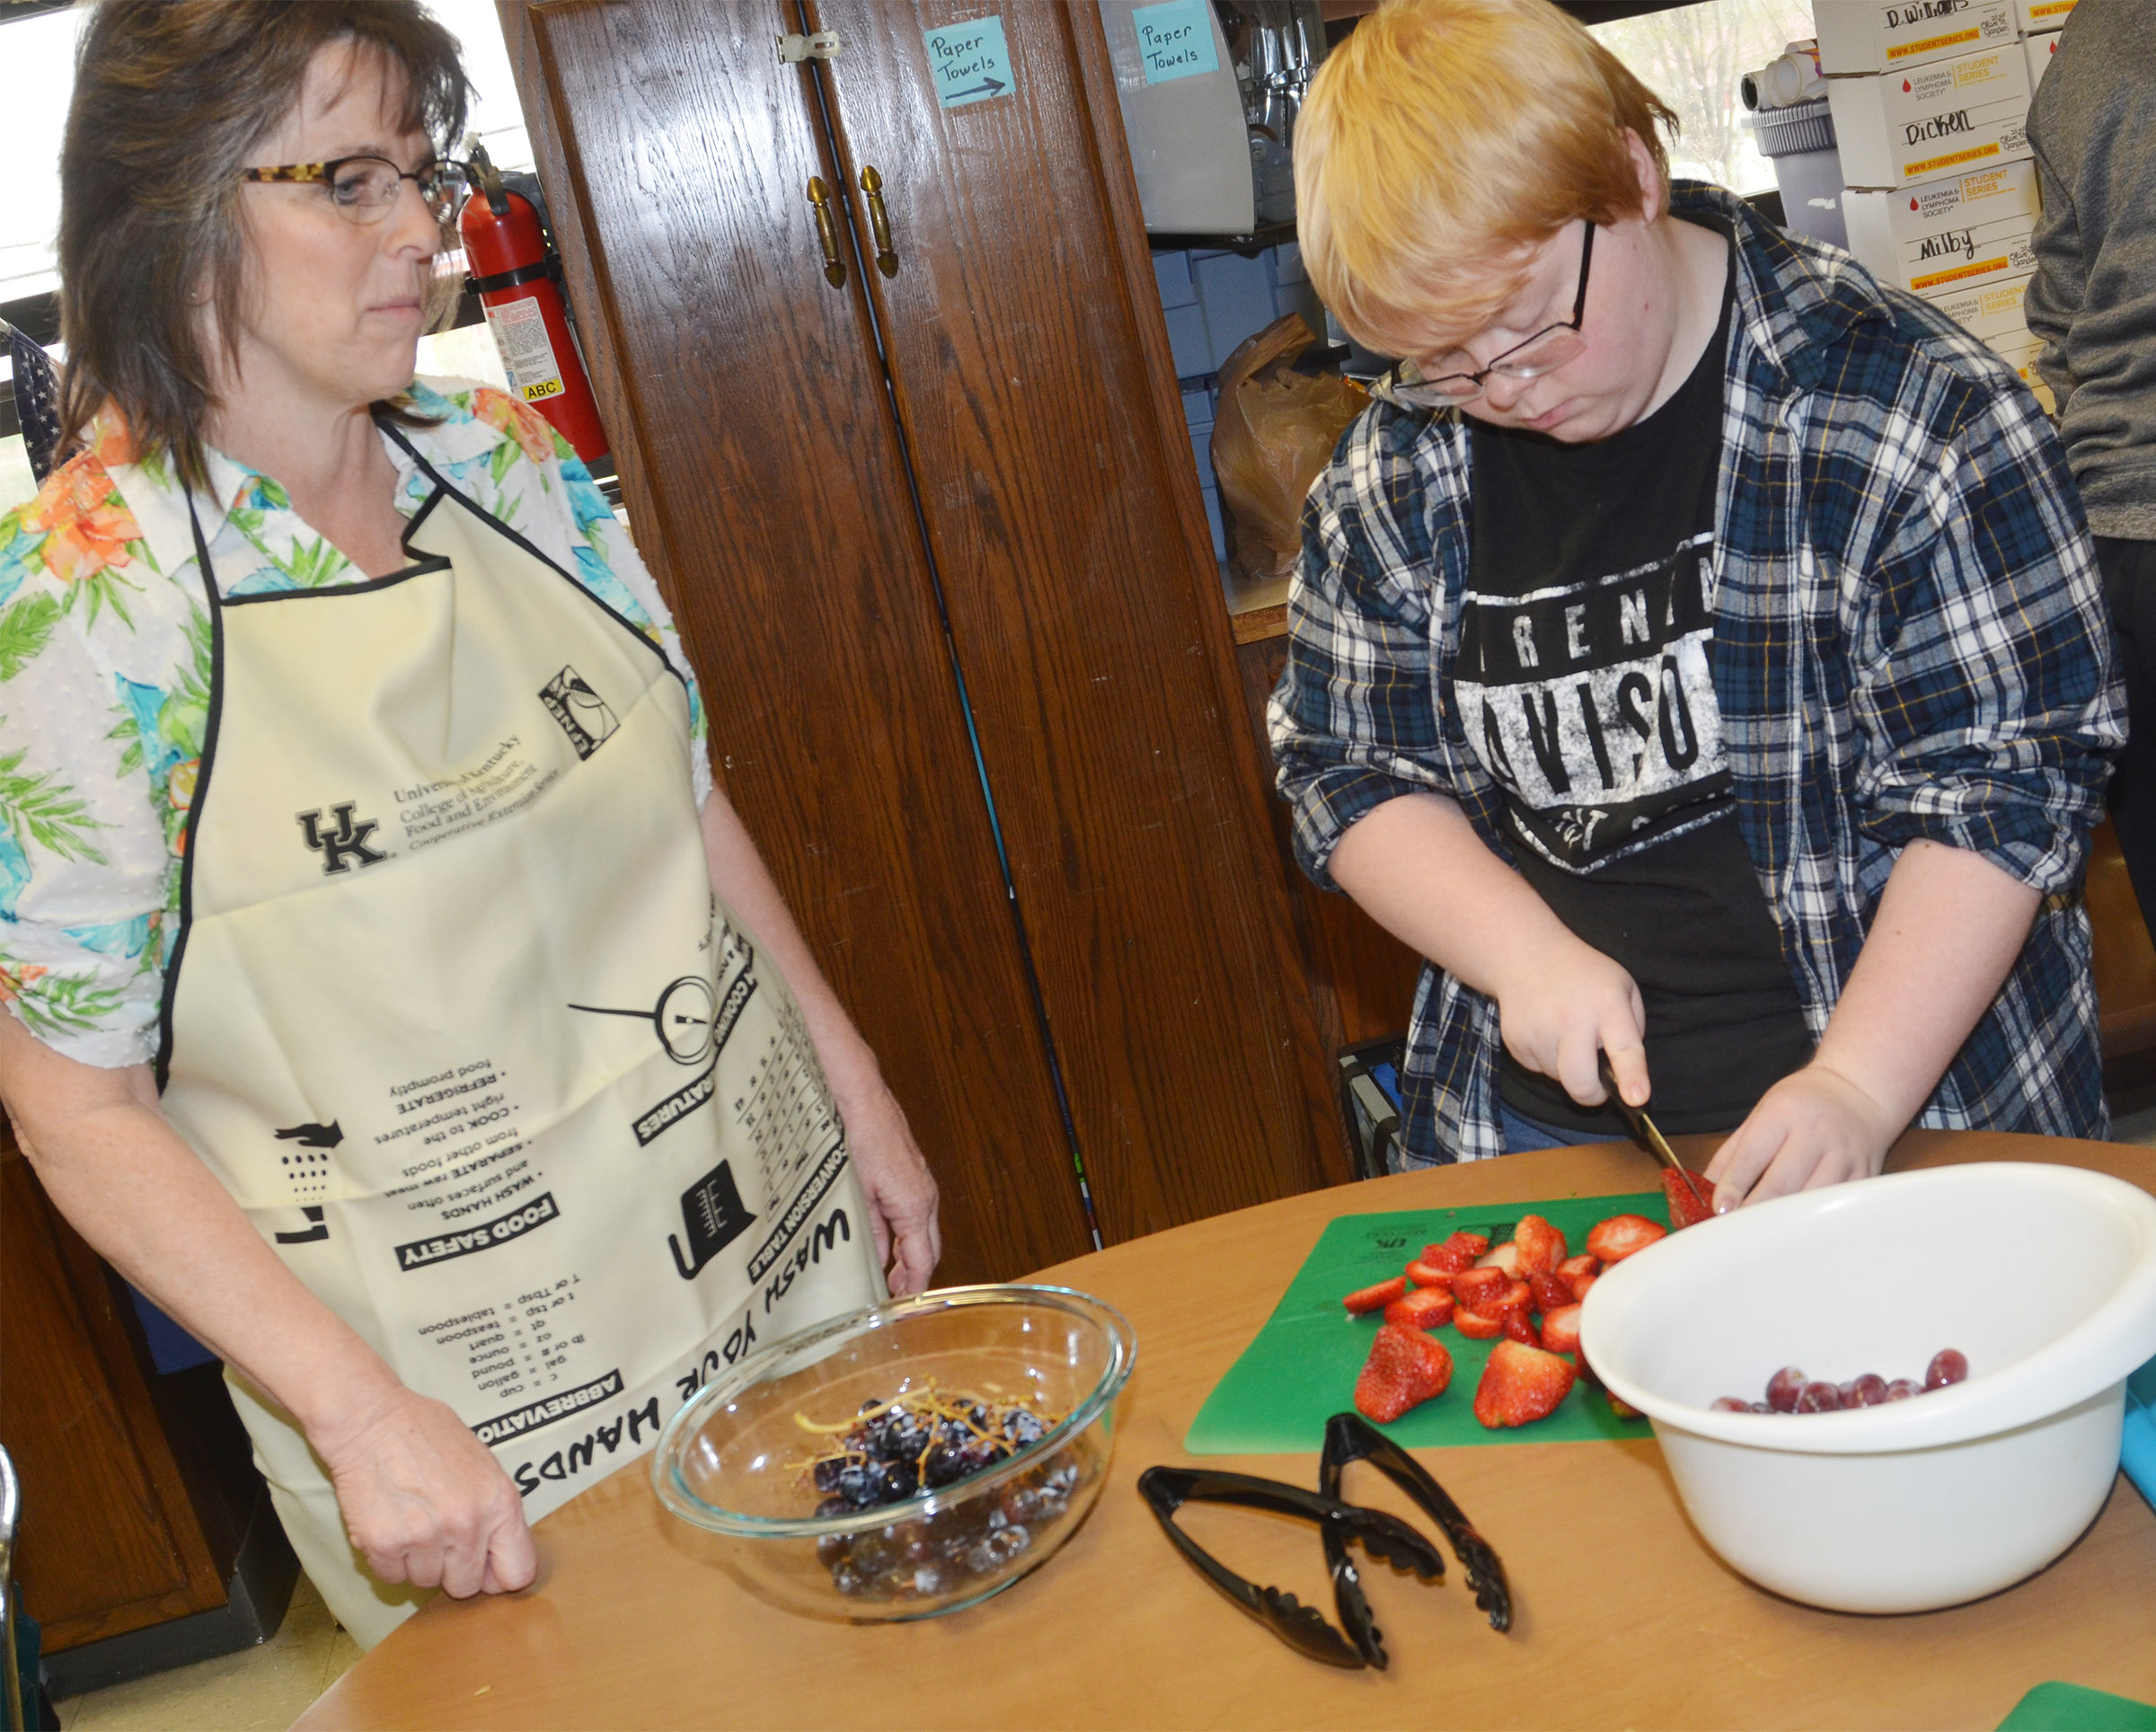 CHS teacher Deanna Campbell helps sophomore Jessie Bennett cut fruit.